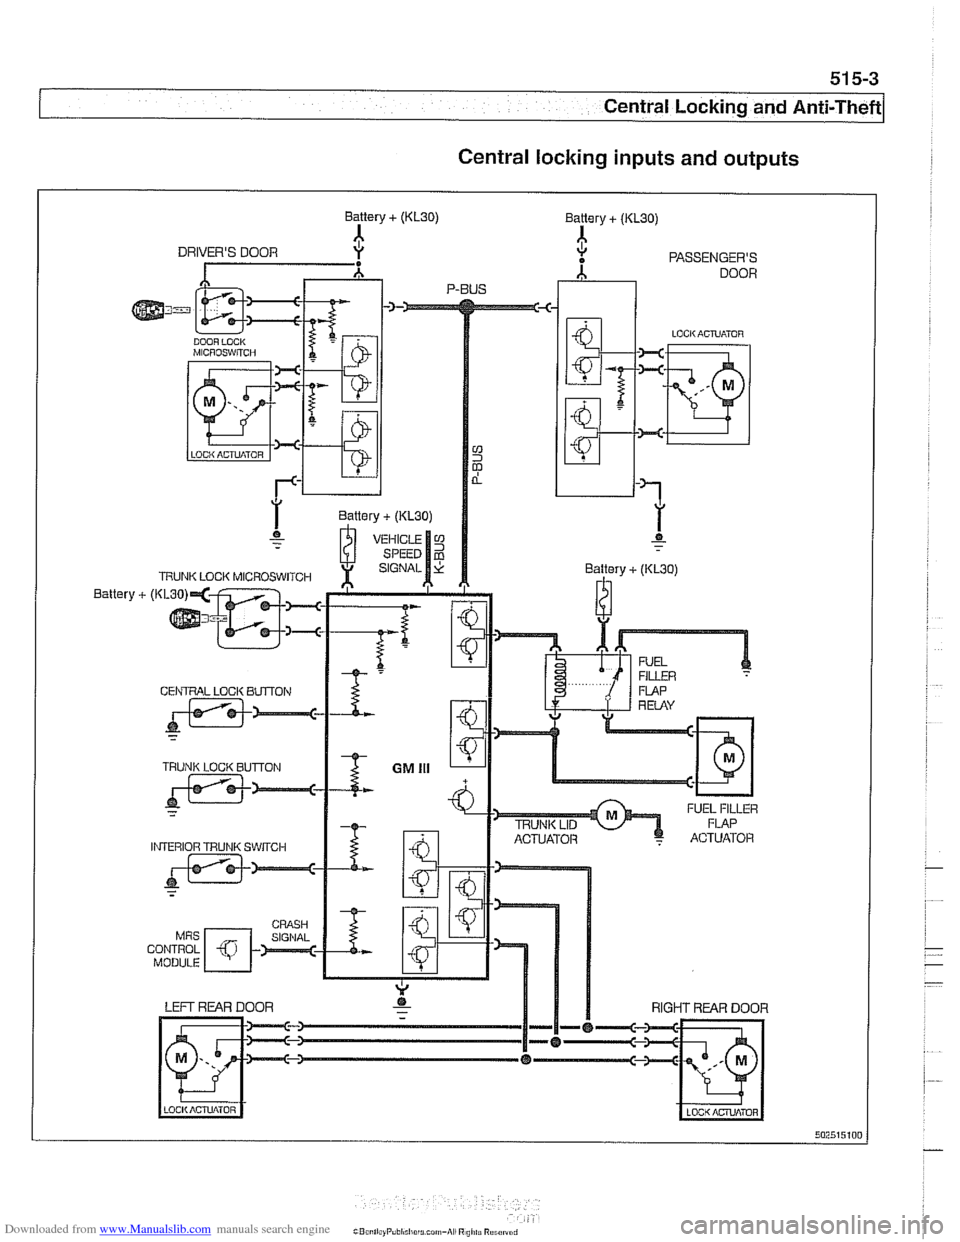 Engine Bmw 530i 2001 E39 Workshop Manual Module Wiring Diagram Page 897